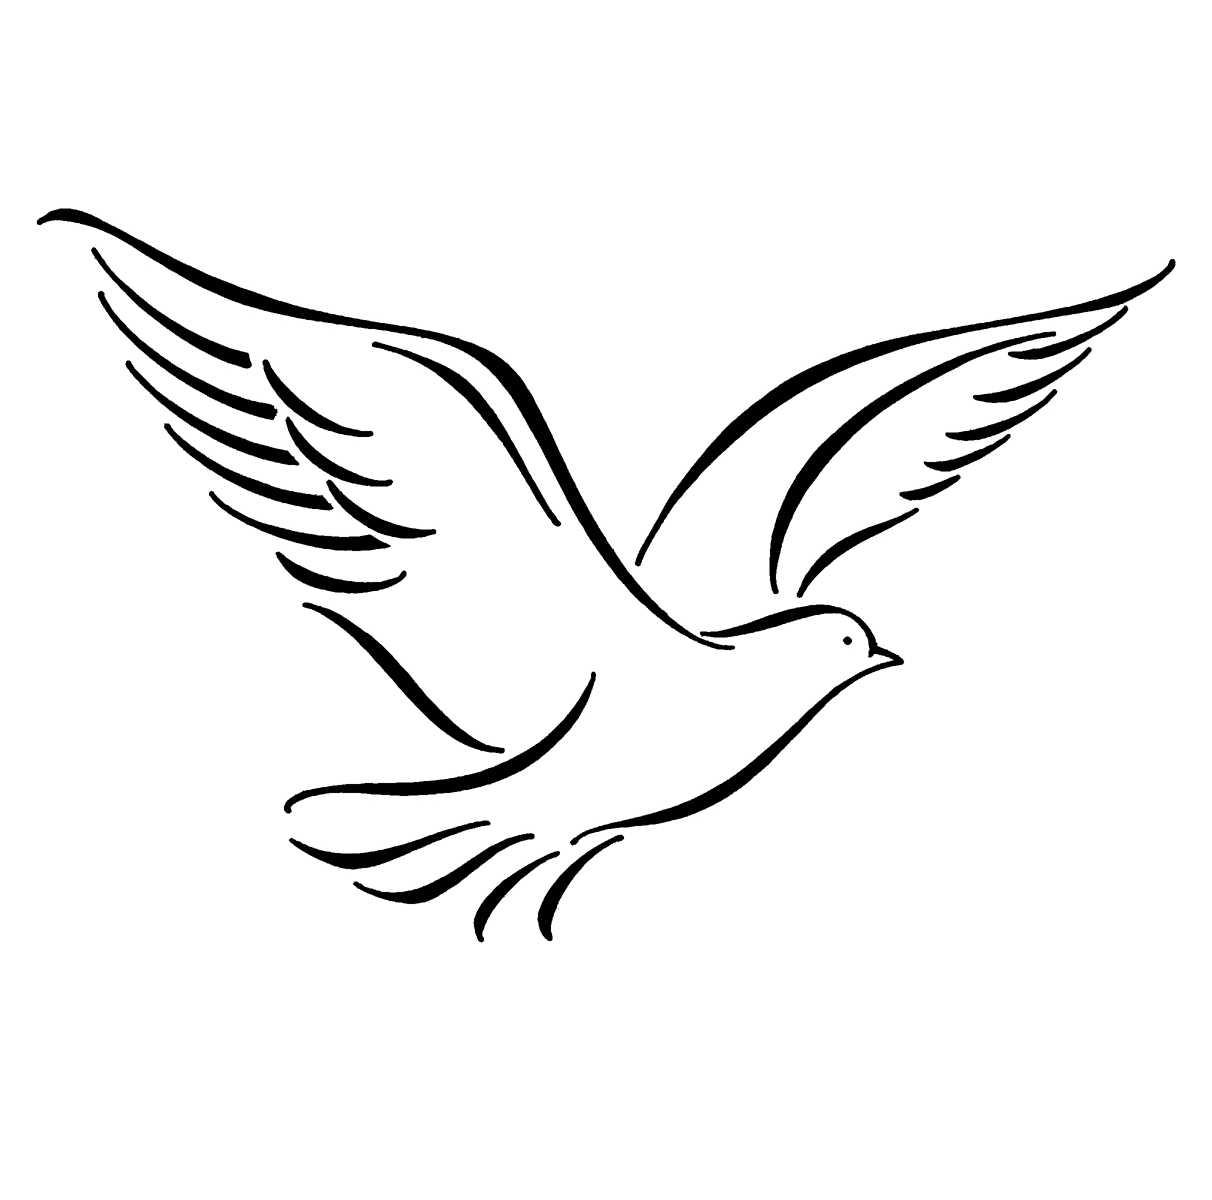 Free Doves Clipart, Download Free Clip Art, Free Clip Art on.